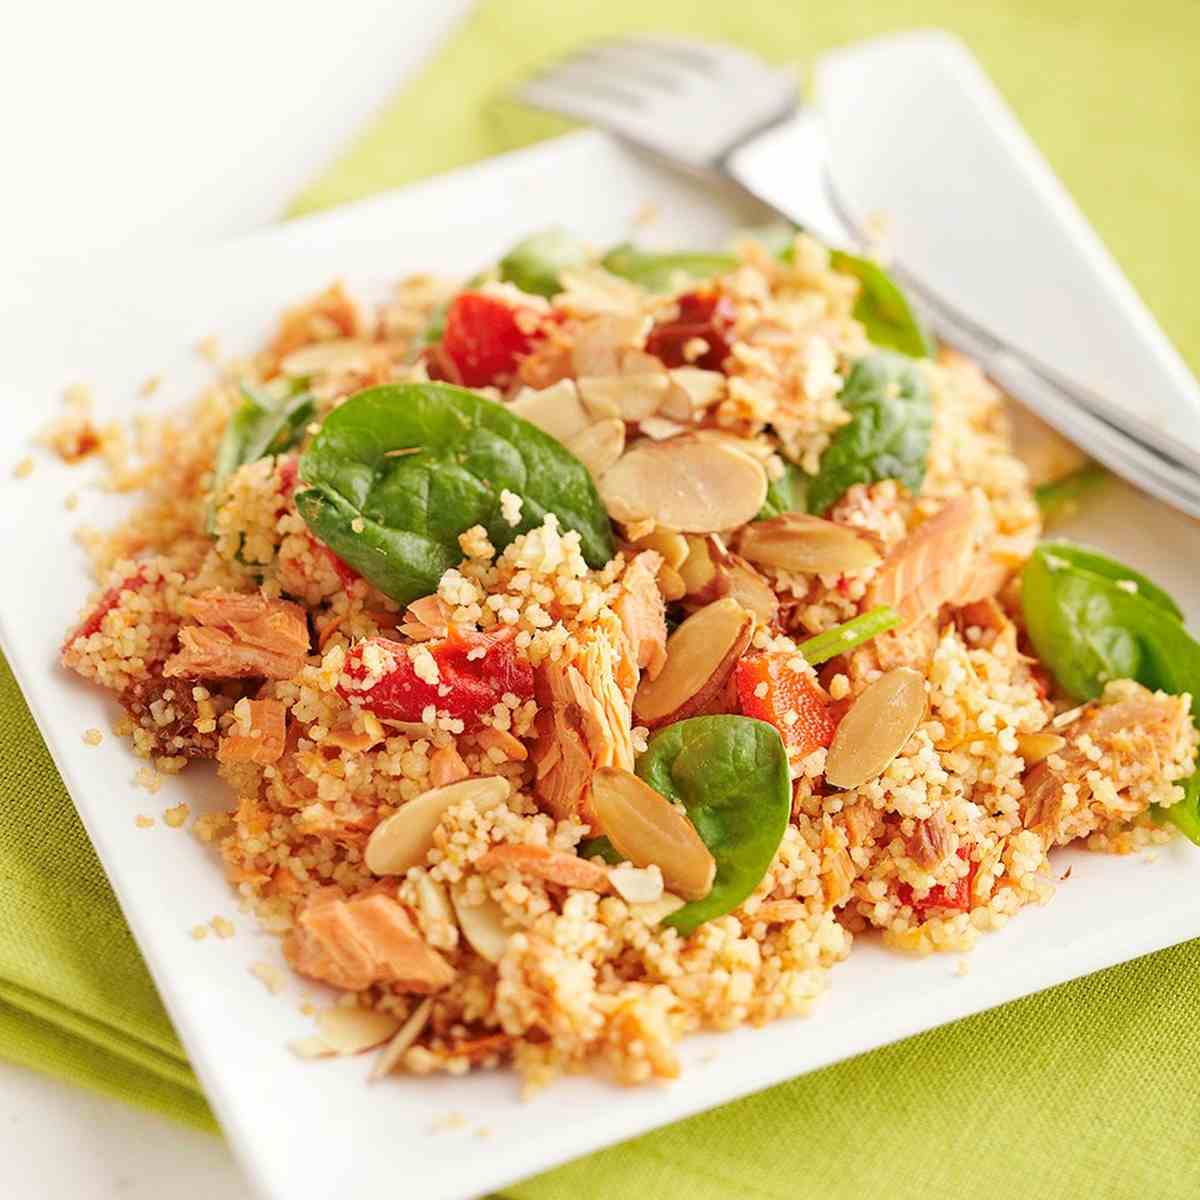 Cous cous di salmone